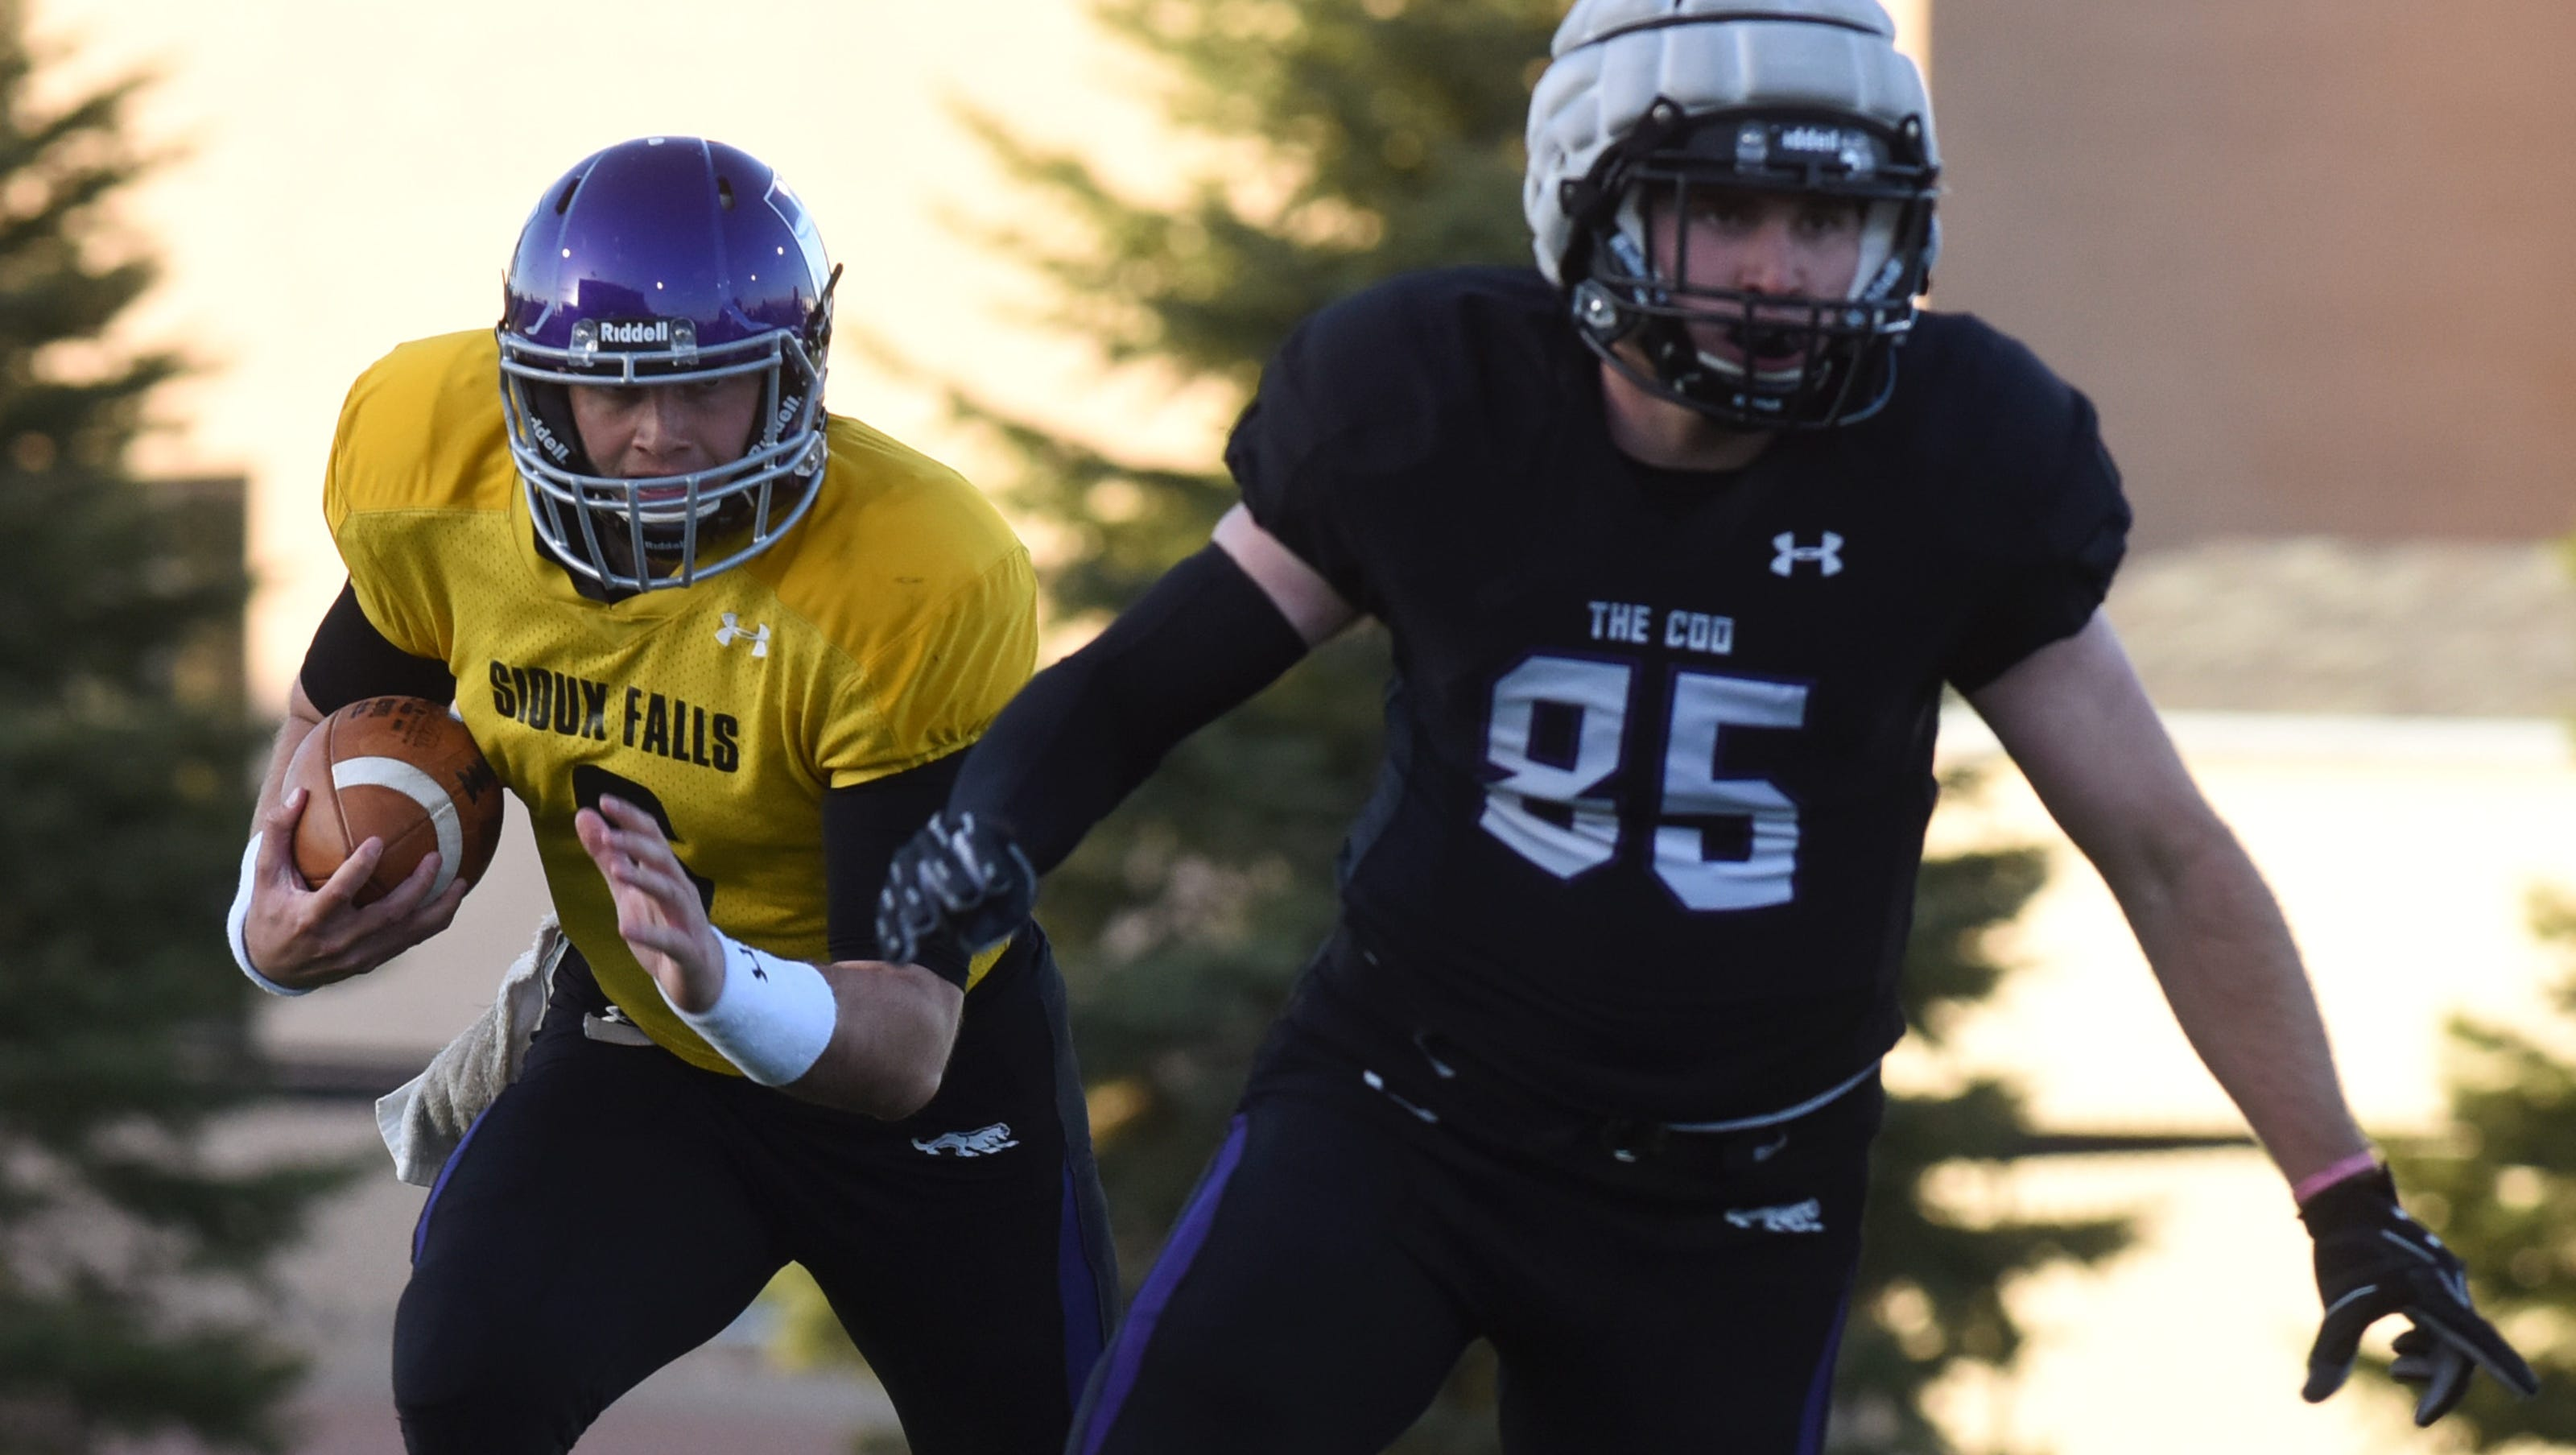 University Of Sioux Falls Football Makes Big Improvements From Last Year